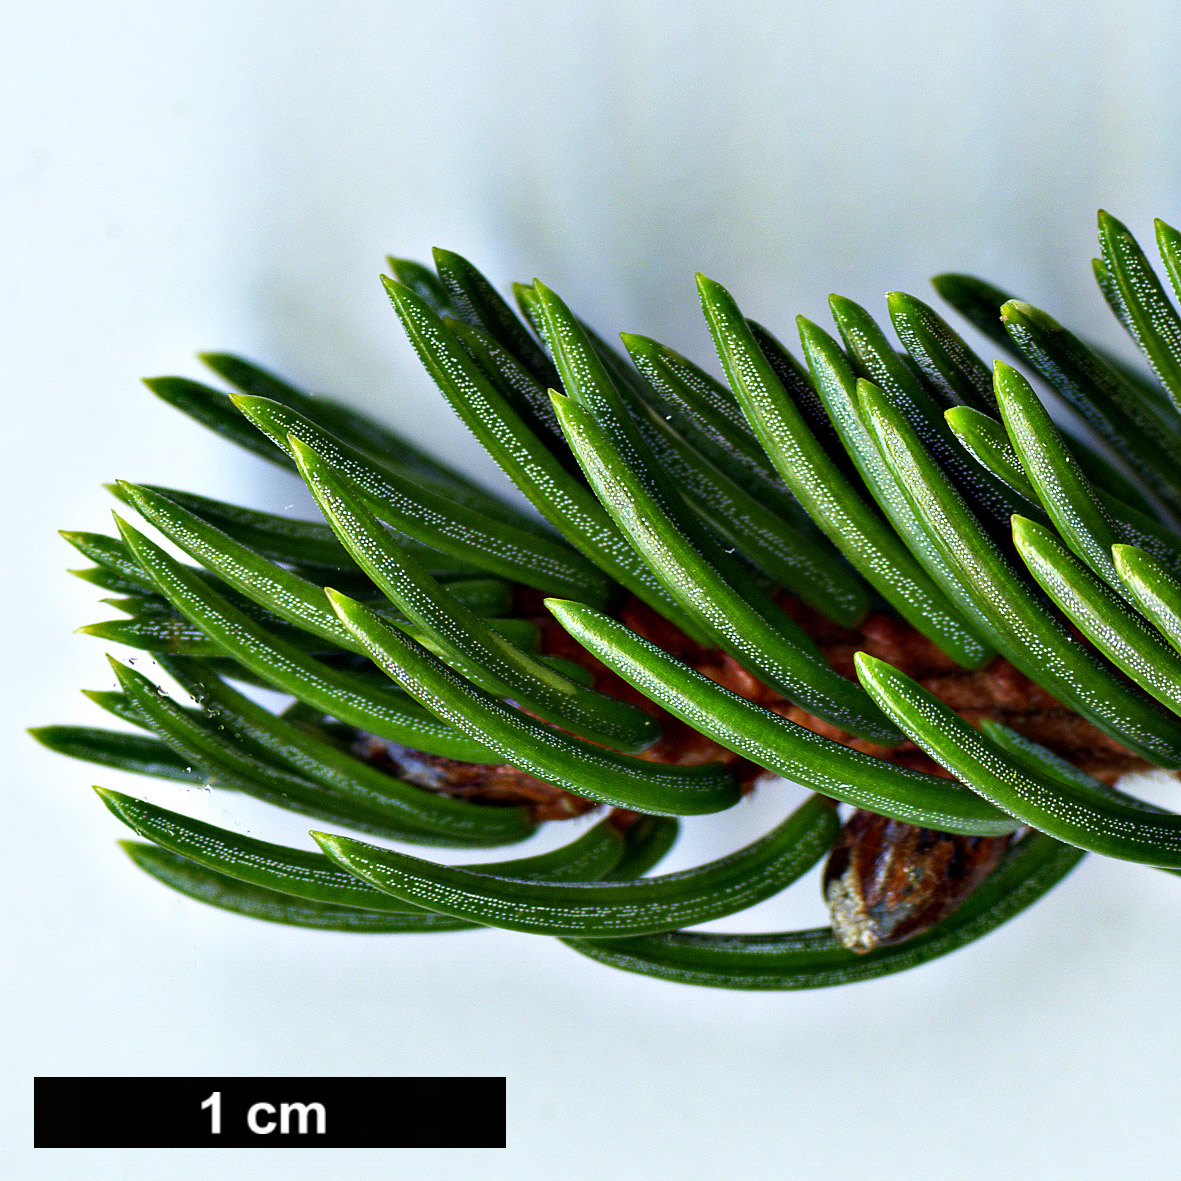 High resolution image: Family: Pinaceae - Genus: Picea - Taxon: glehnii